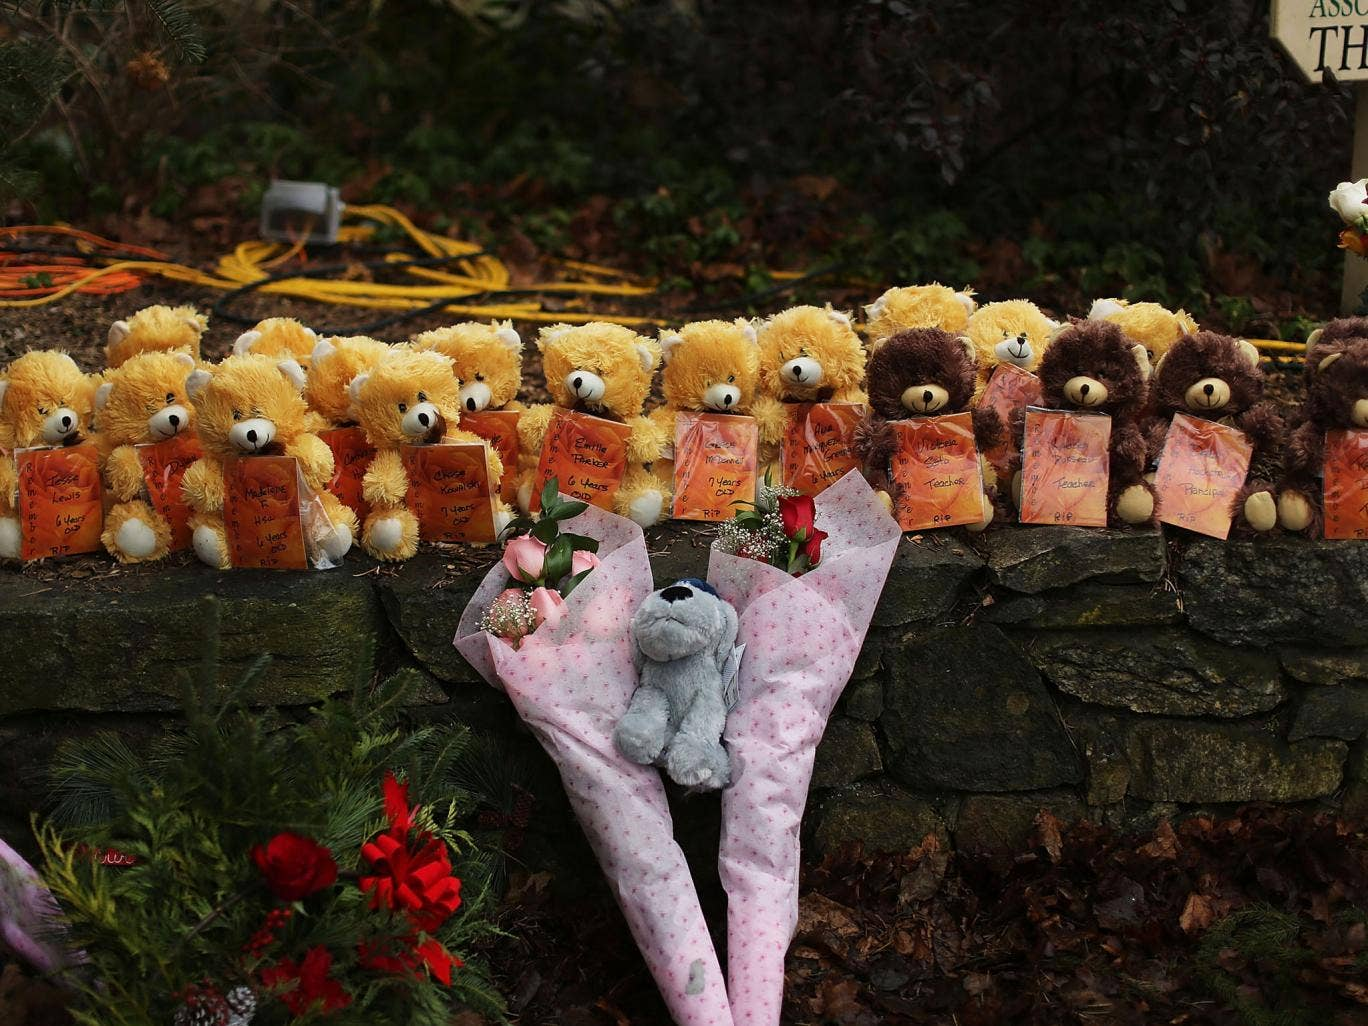 The massacre at Newtown has led to a heated debate about gun ownership in America